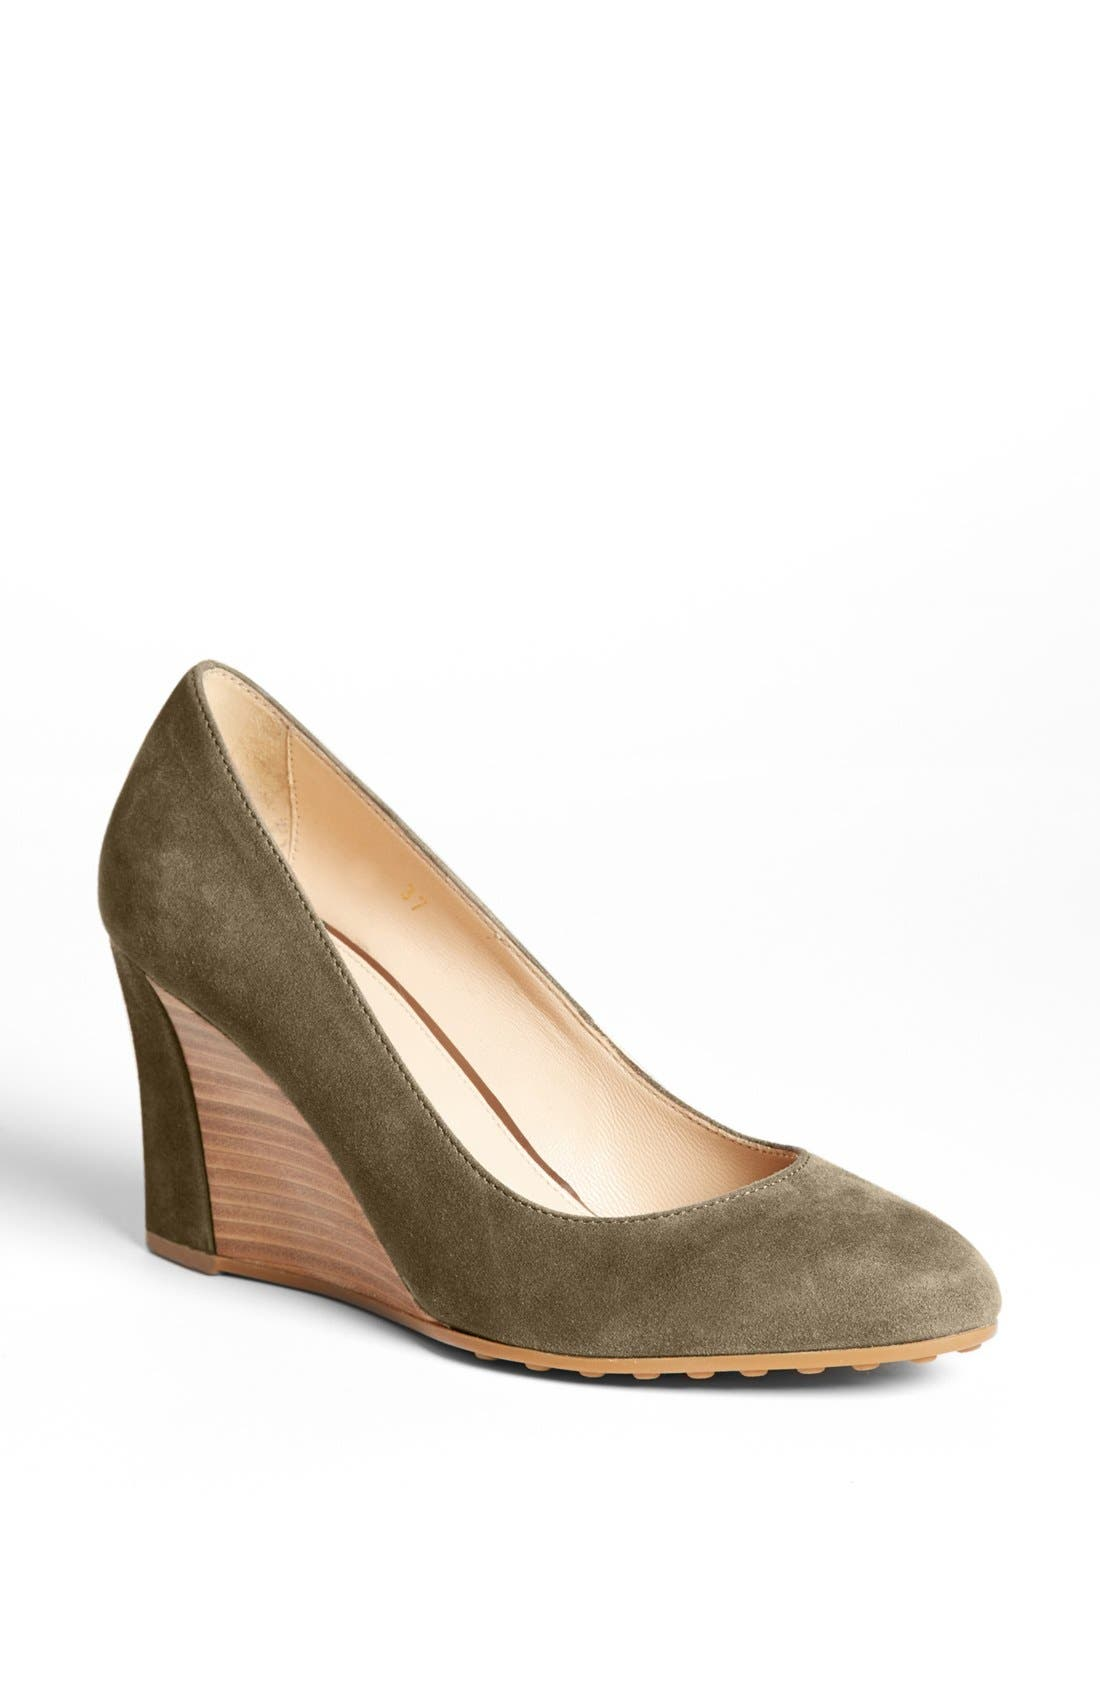 Main Image - Tod's Suede Wedge Pump